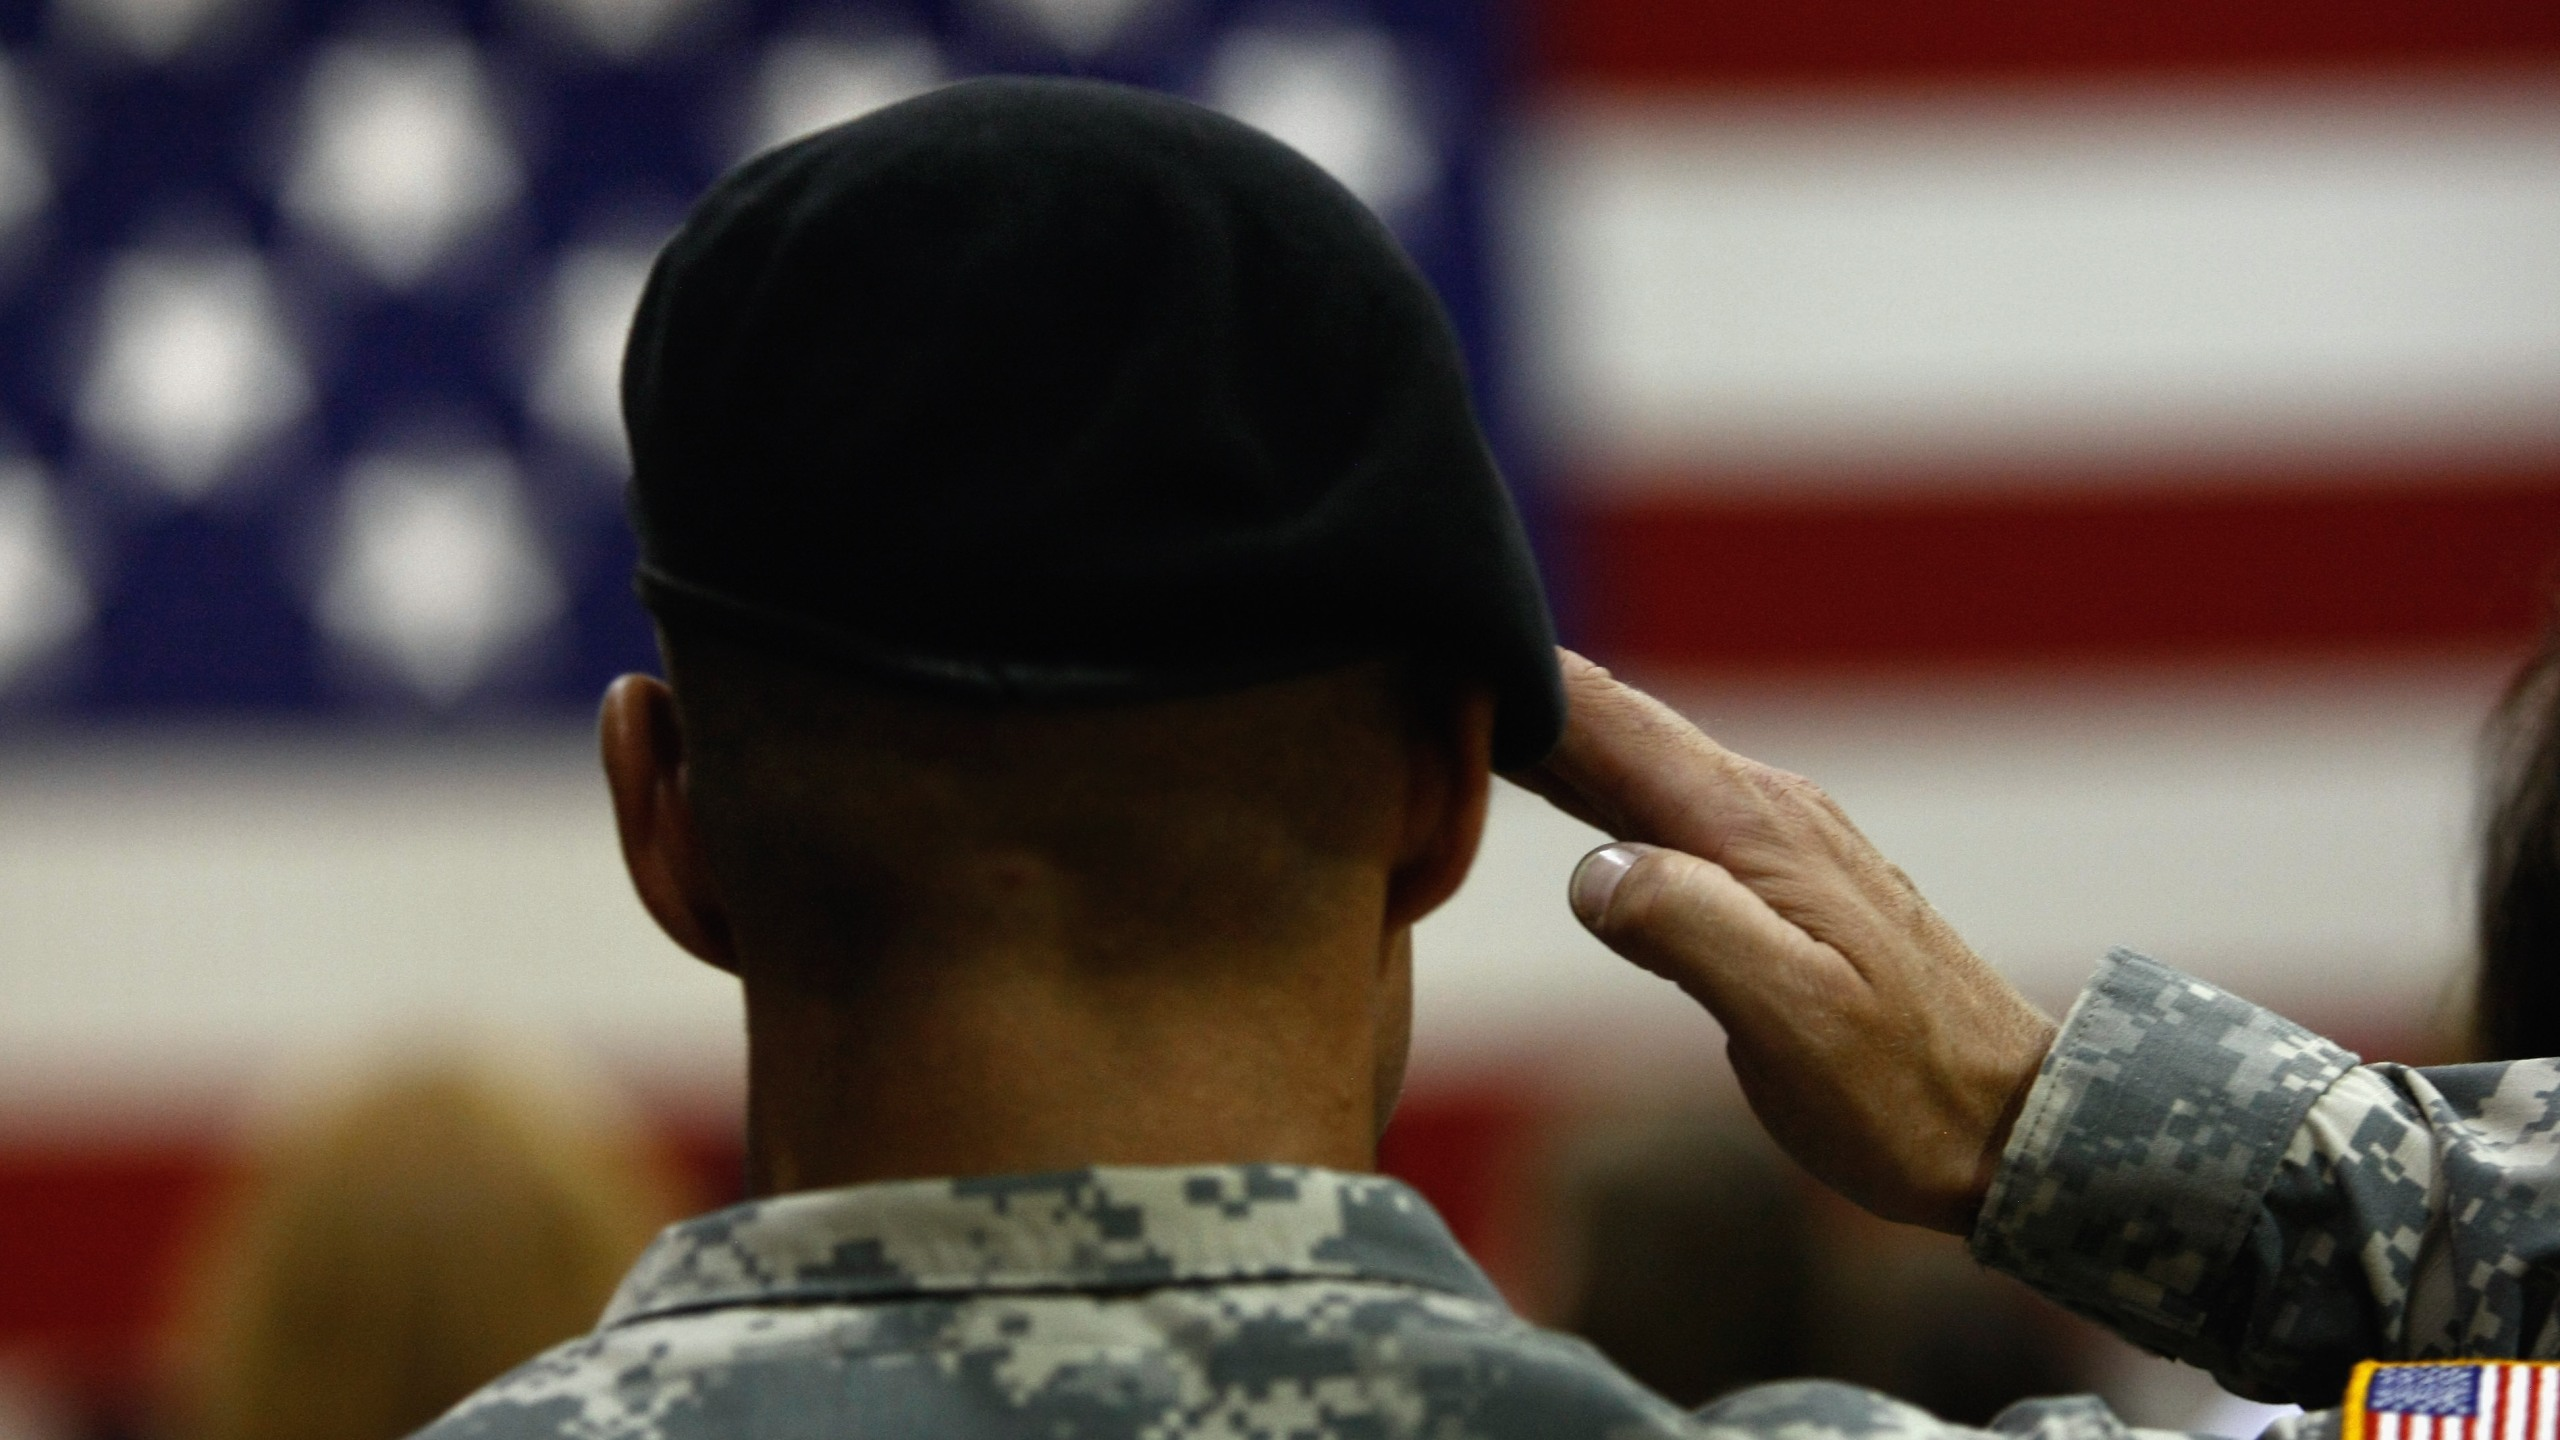 A U.S. Army soldier salutes during the national anthem as soldiers return home from Iraq on August 29, 2009 in Fort Carson, Colorado. (Credit: John Moore/Getty Images)